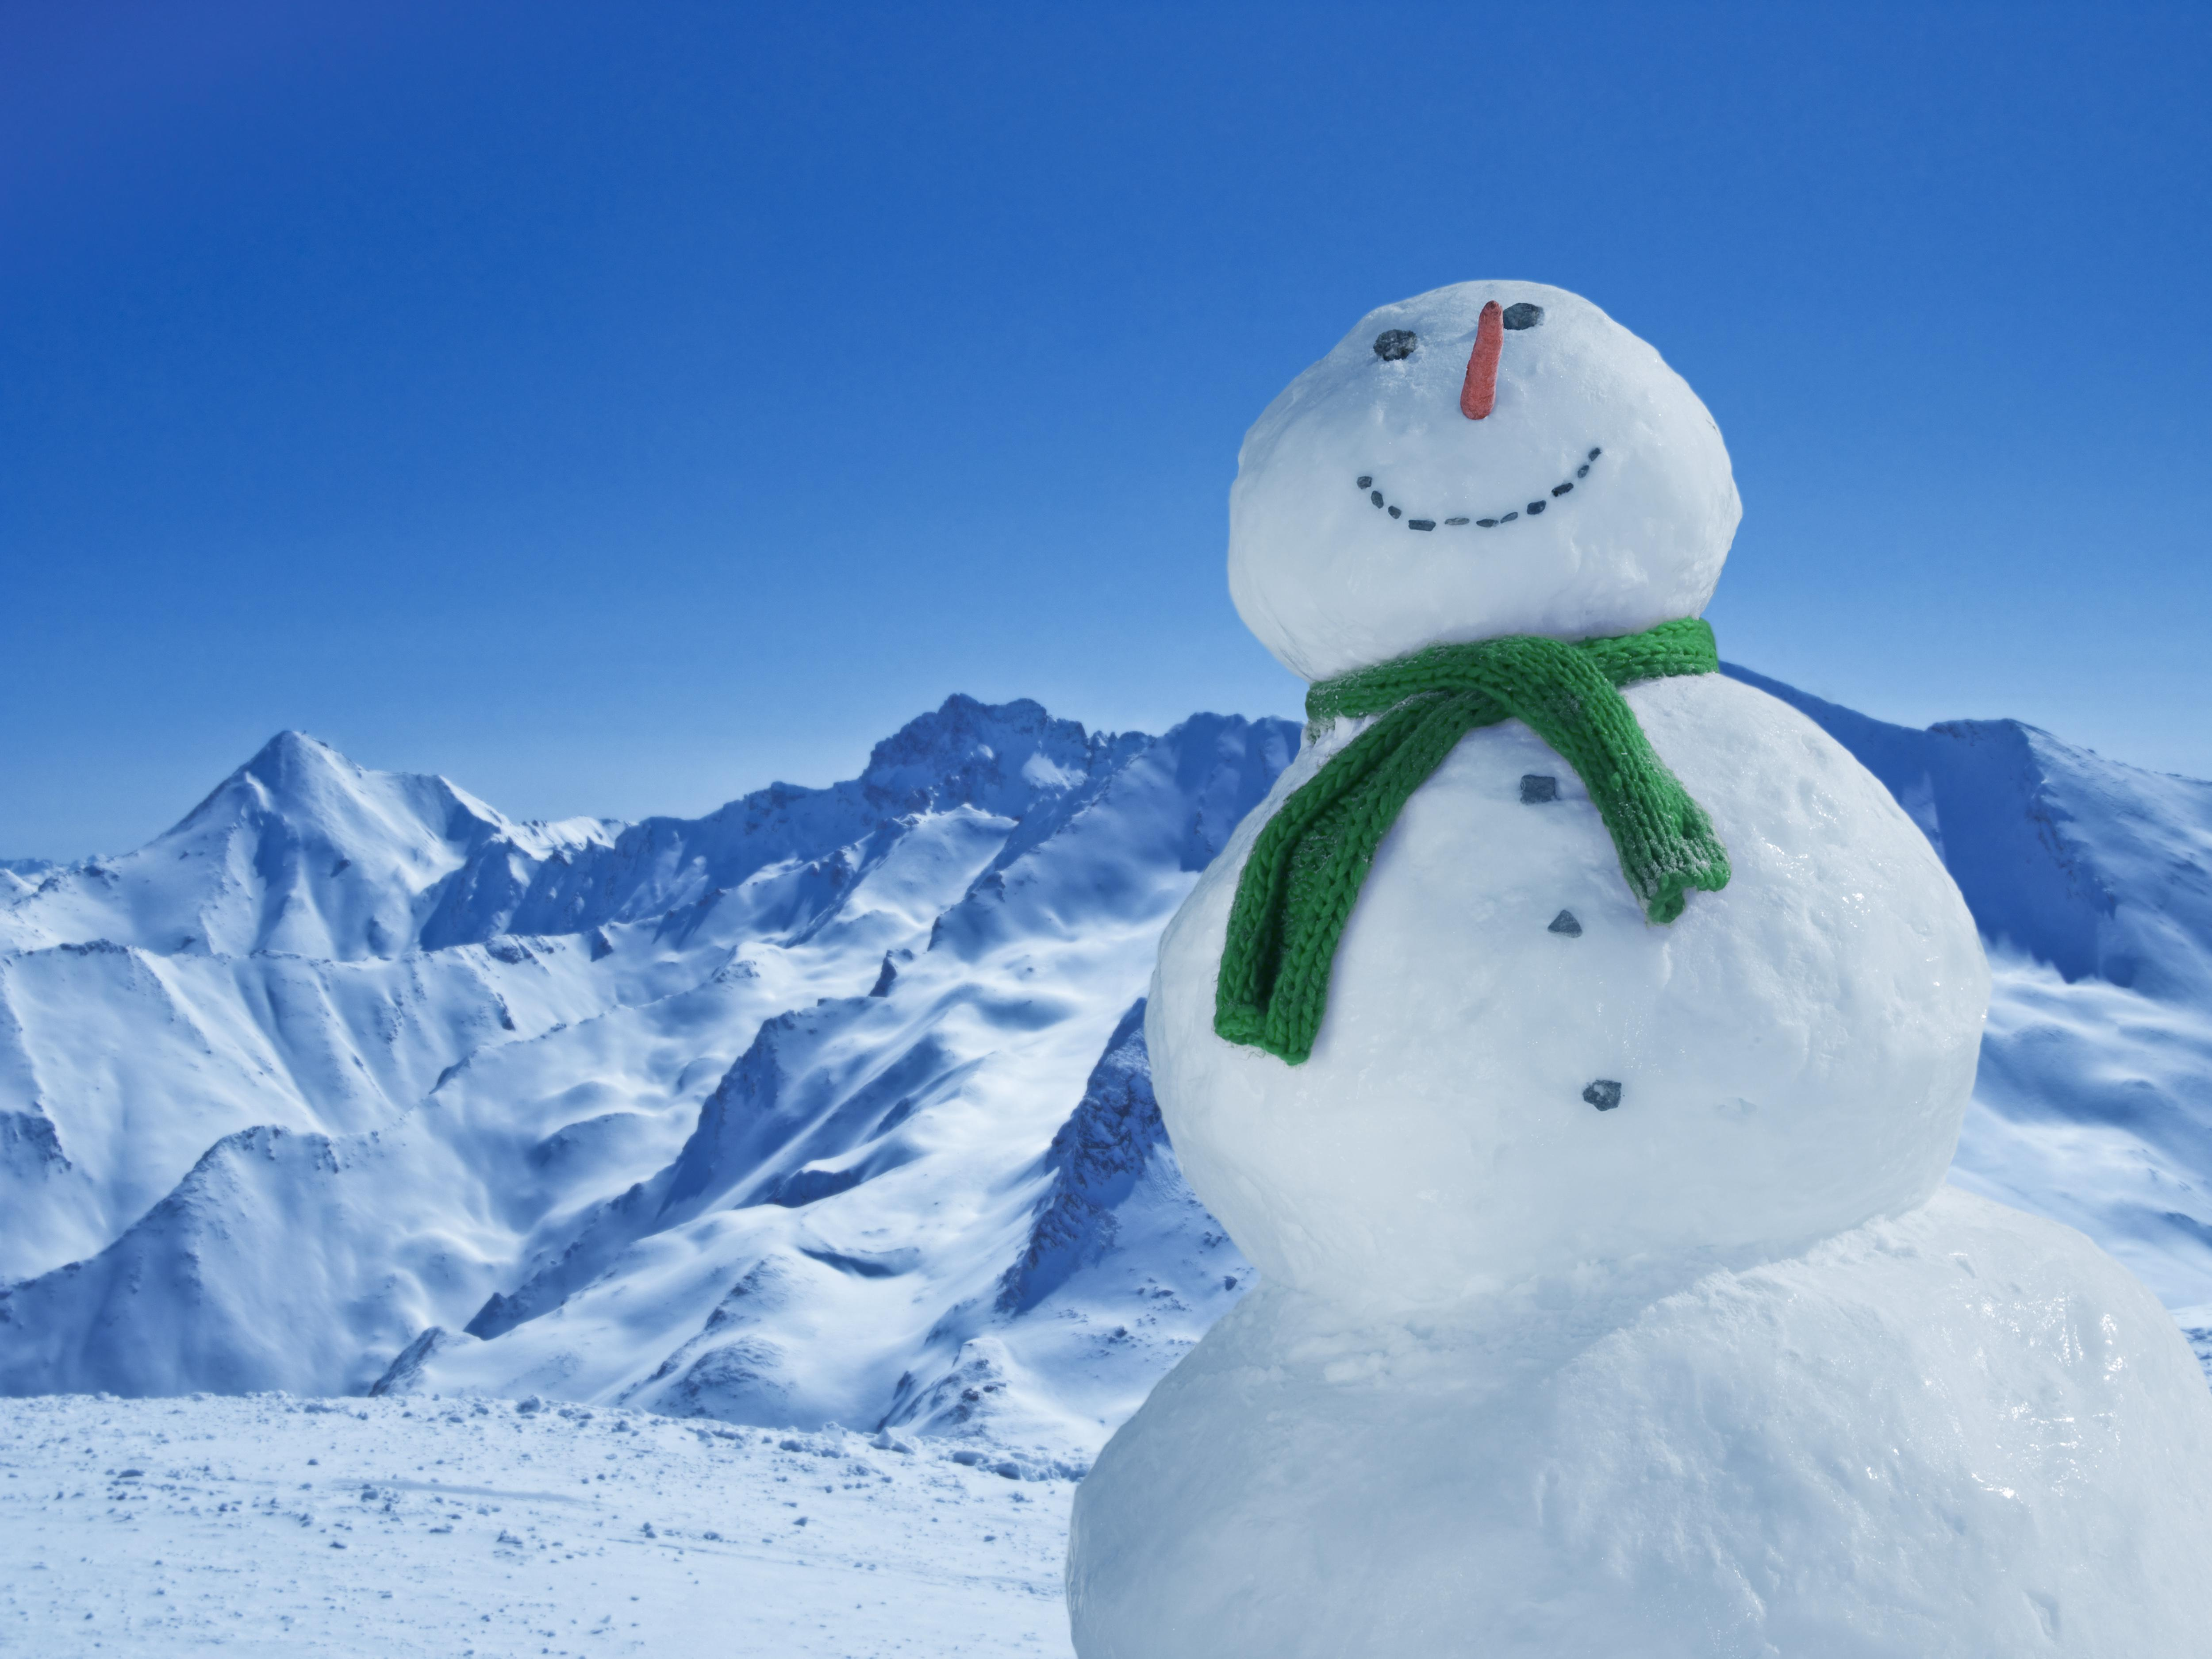 Smiling Snowman in Mountains near Ischgl, Austria